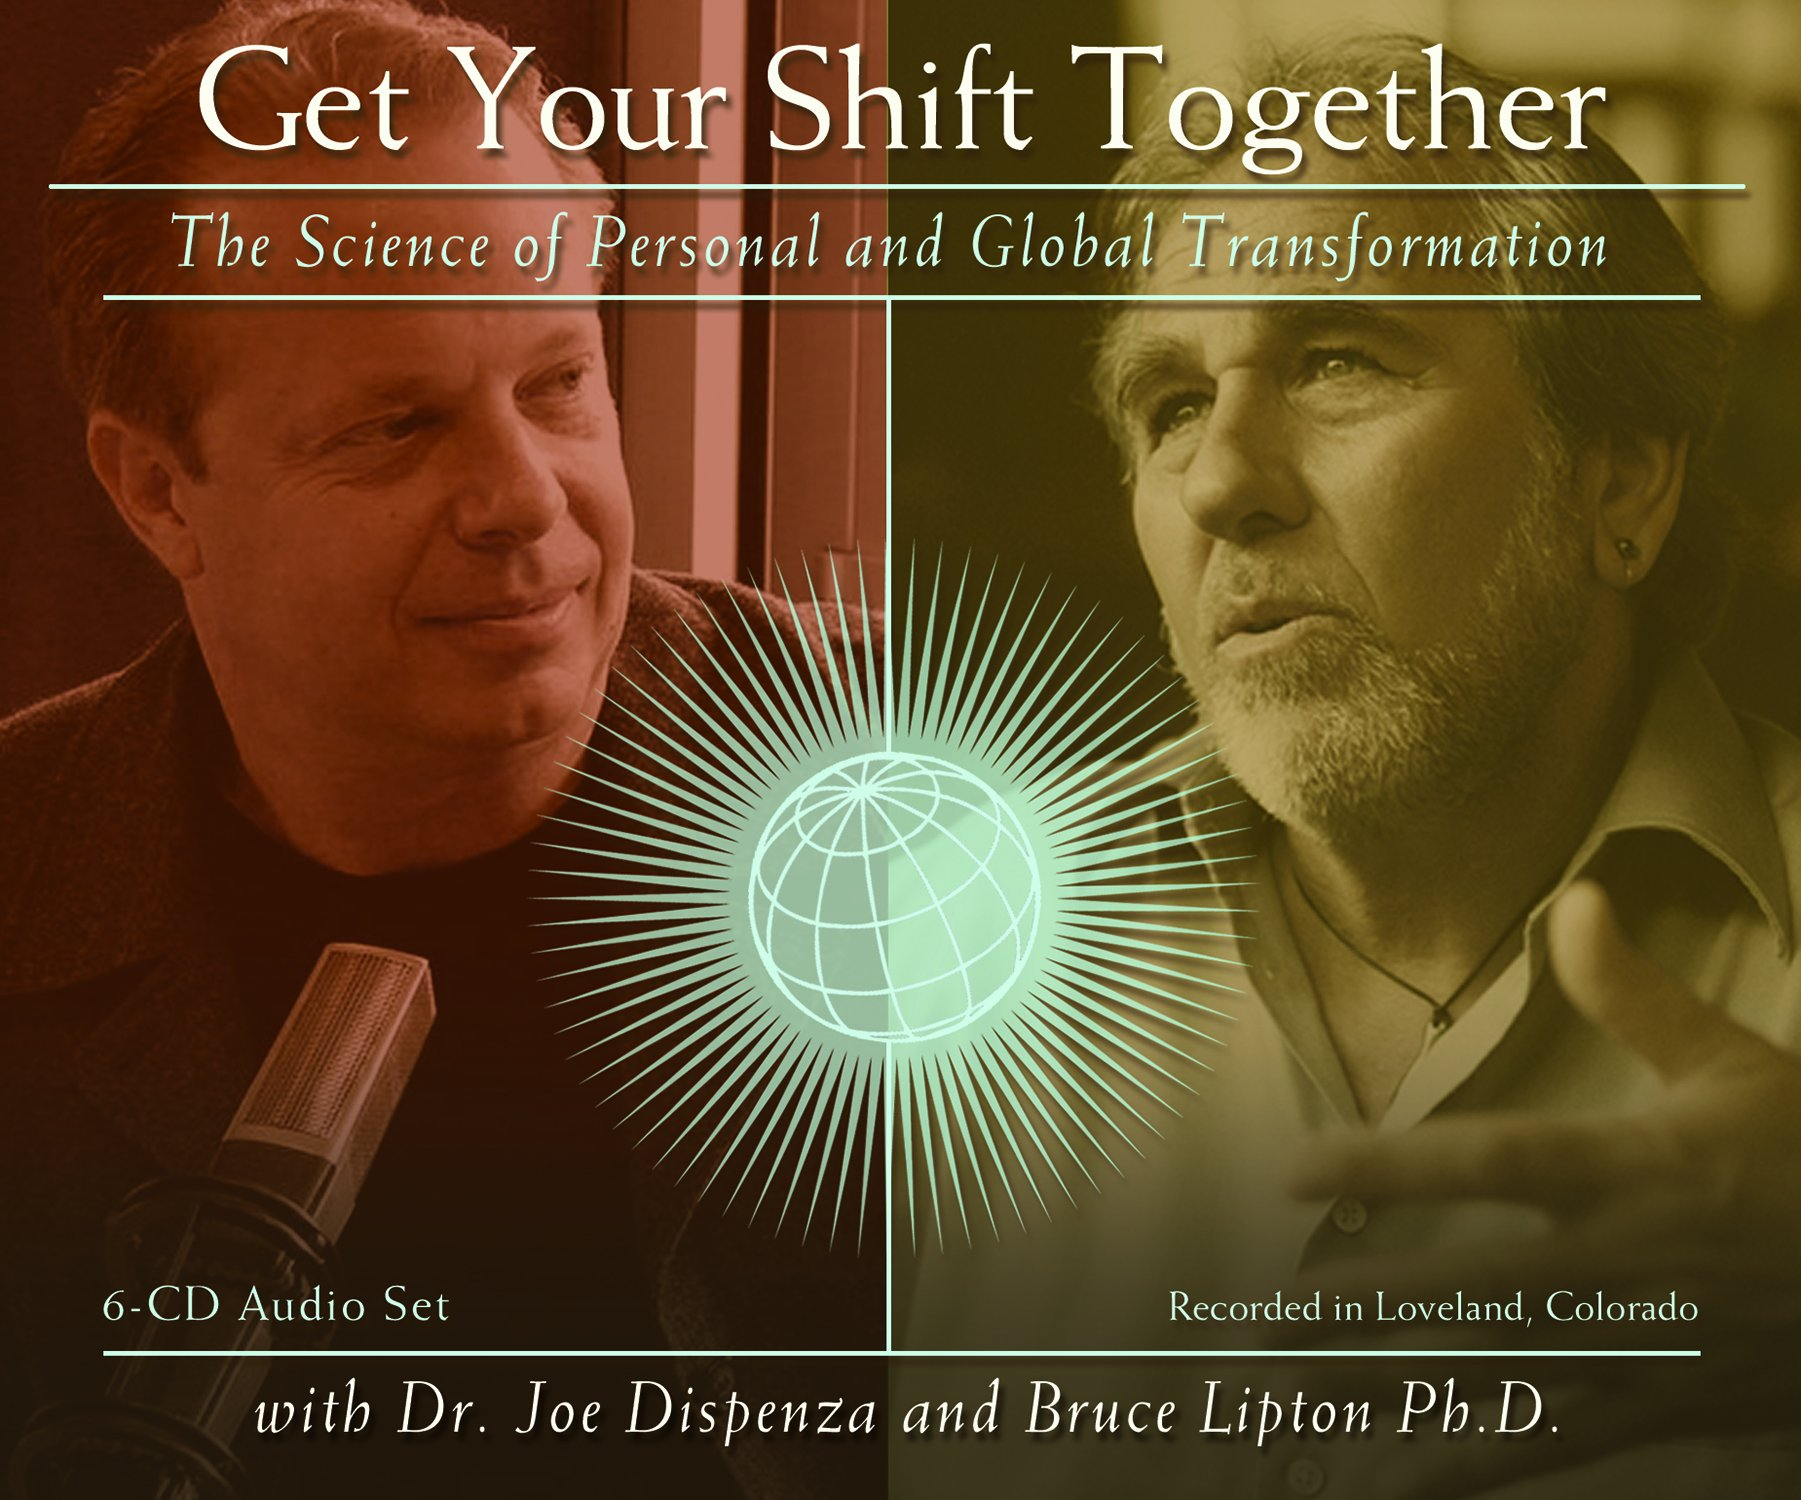 Get Your Shift Together Vol. 1: The Science of Personal and Global Transformation by Encephalon, LLC